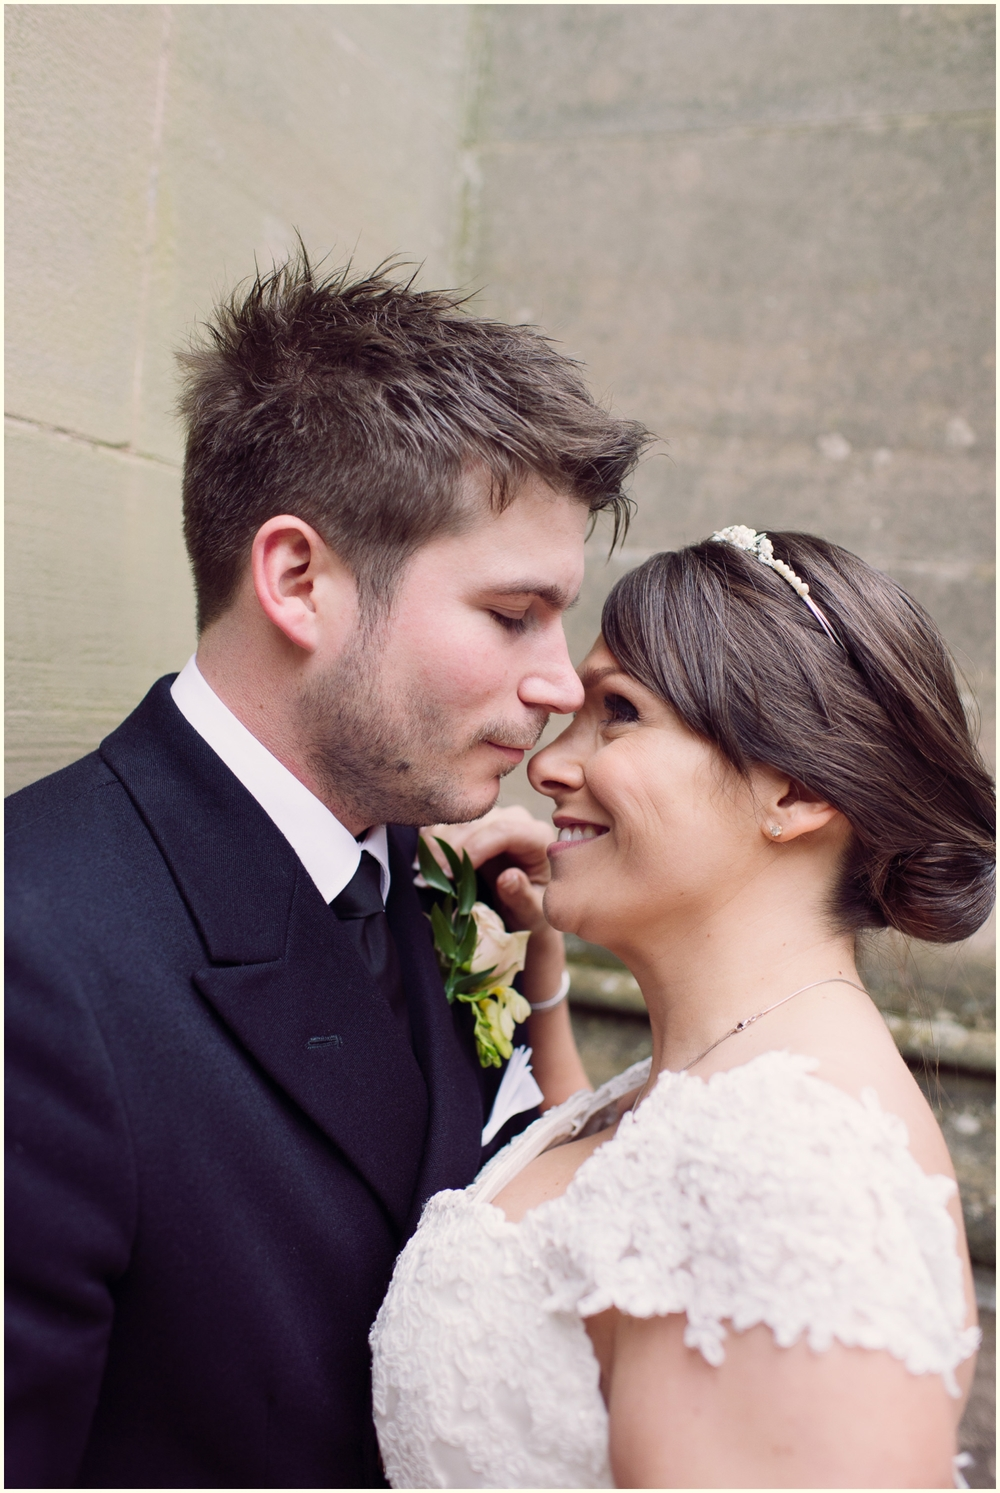 Nikki_Cooper_Photography_Rich&Sarah_Wedding_Photos_Crown_and_Sandys_Ombersley_Worcester_1032.jpg